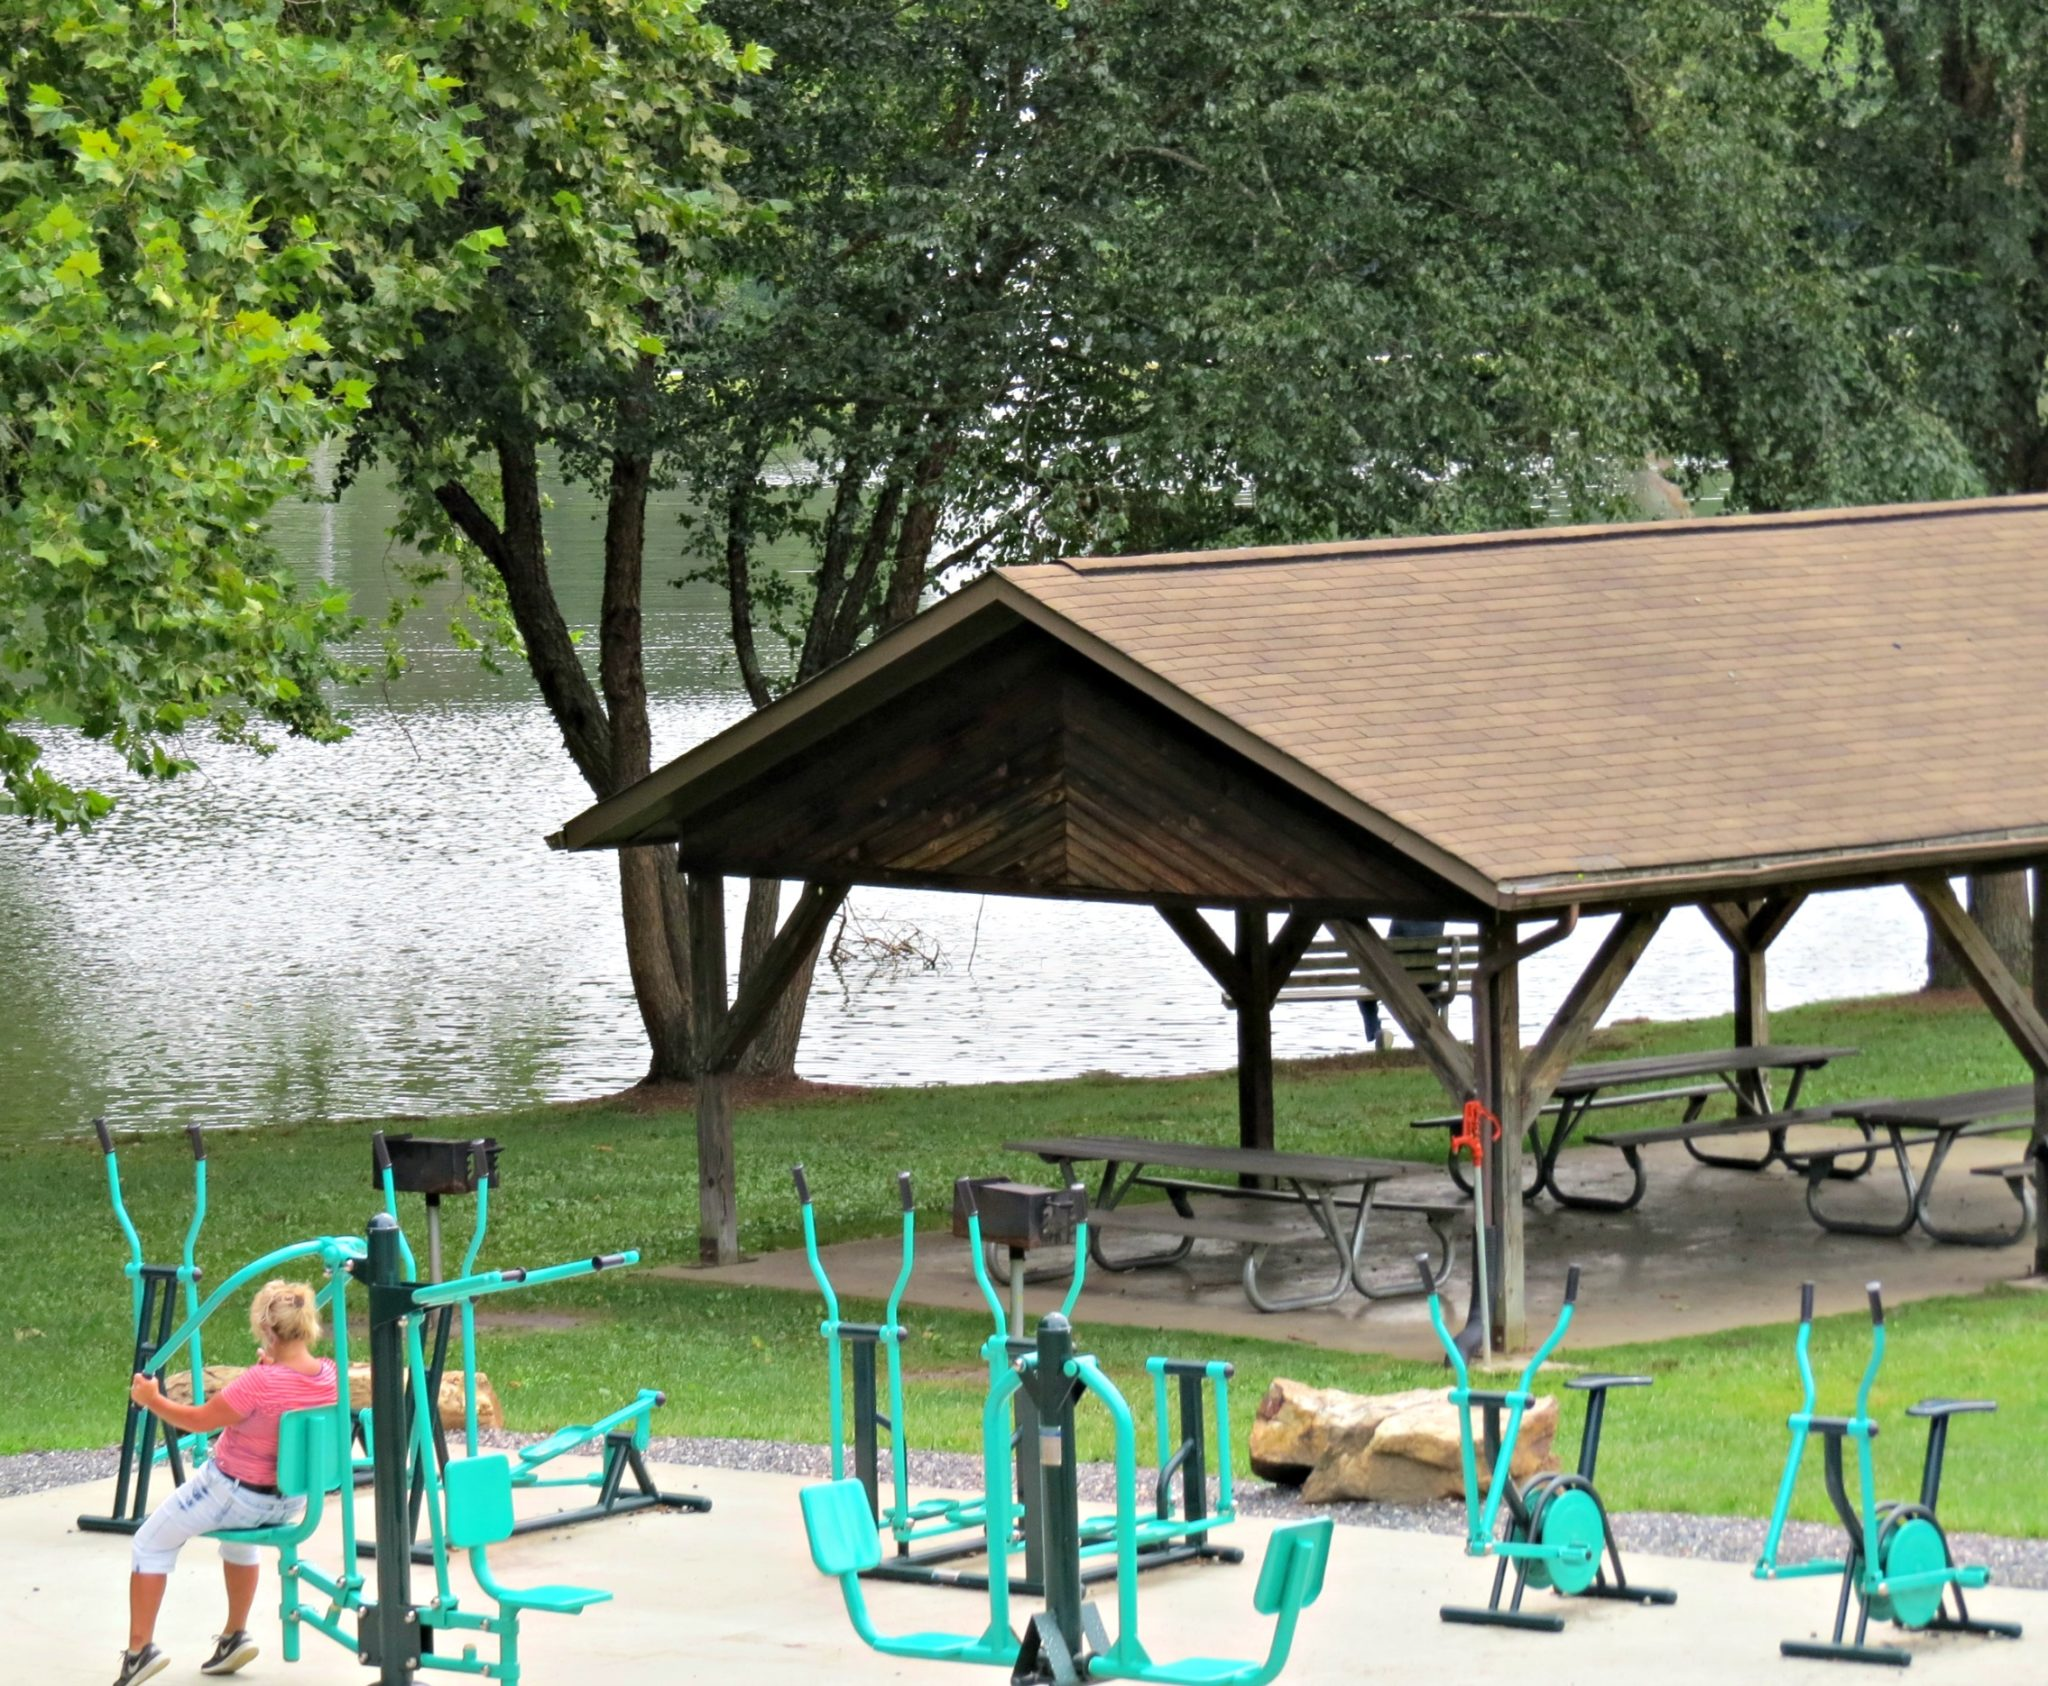 Town Of Weaverville NC Outdoor Exercise Lake Louise Park